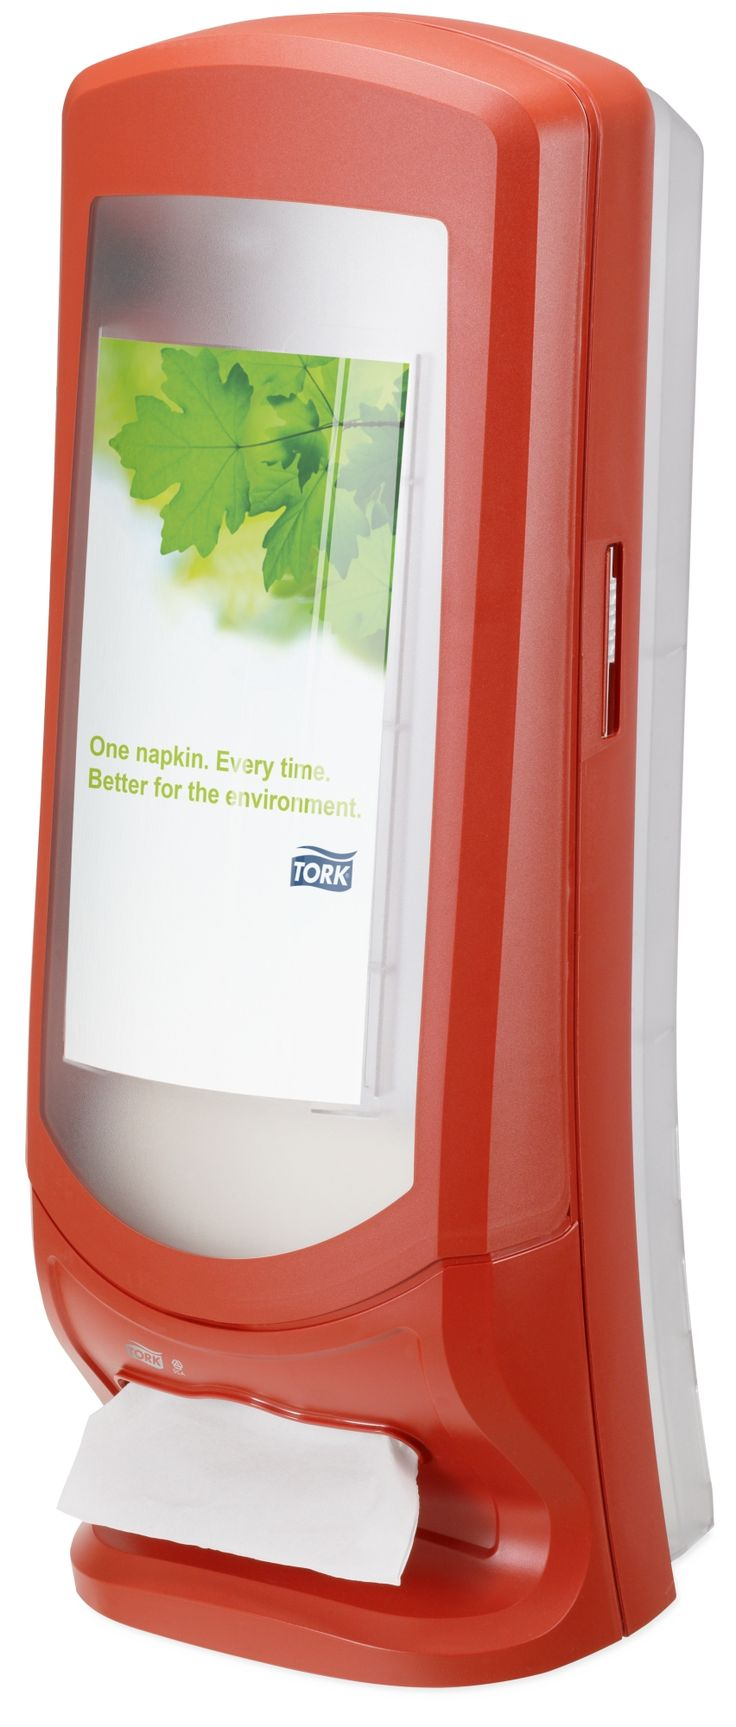 Tork Xpressnap® Stand Napkin Dispenser: We guarantee Tork Xpressnap® napkin dispensing system will reduce napkin usage by at least 25% compared with traditional dispensers, helping you to reduce napkin consumption and waste. (System: N4 - Interfolded napkin system; Material: Plastic; Height: 622mm, Width: 235 mm, Depth: 235 mm; Color: Red) Get more information about this product at: http://bimobject.com/en/sca-eu/product/272212/sca-tork-eu